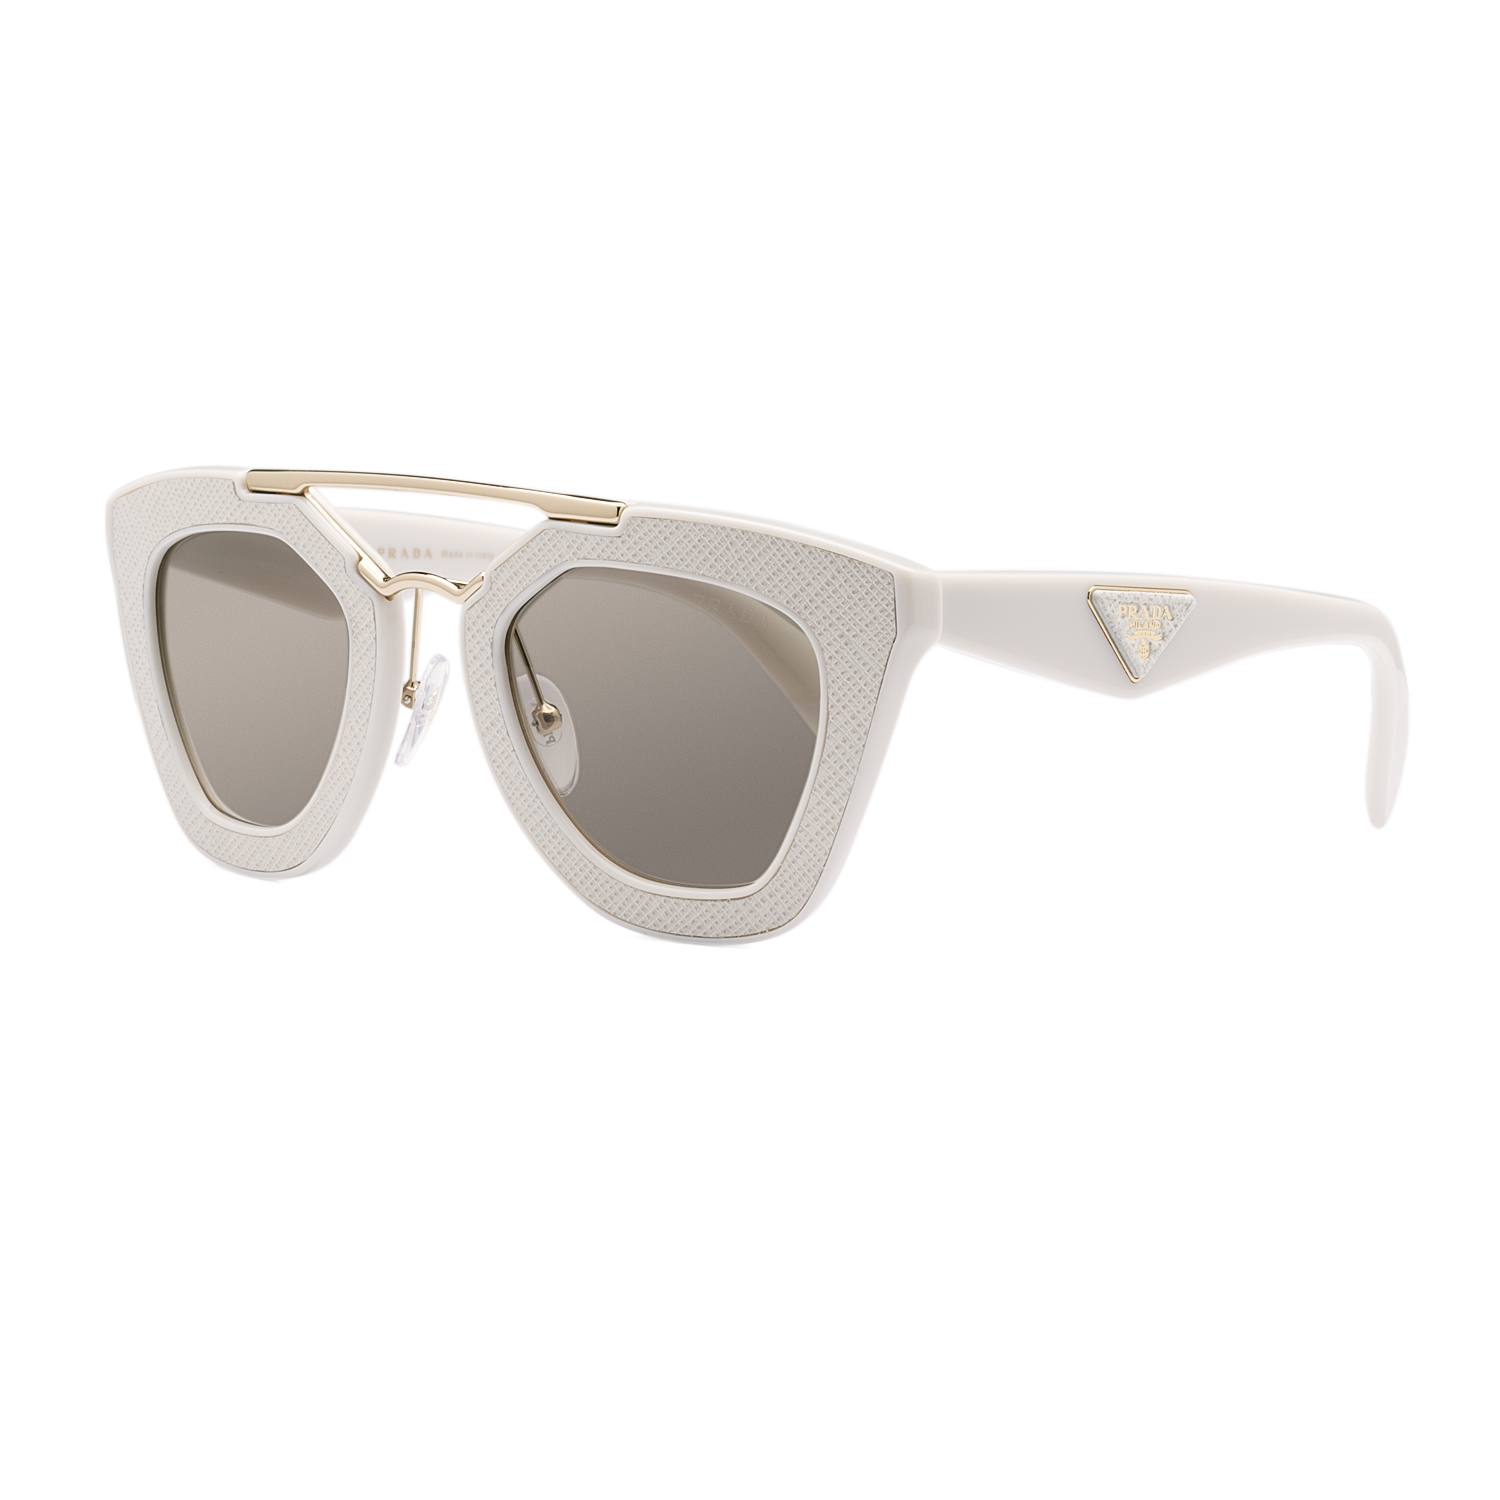 395bbbb1cd7c Prada 14SS Sunglasses UFP3H2 Ivory / Brown Gradient 8053672536416 | eBay